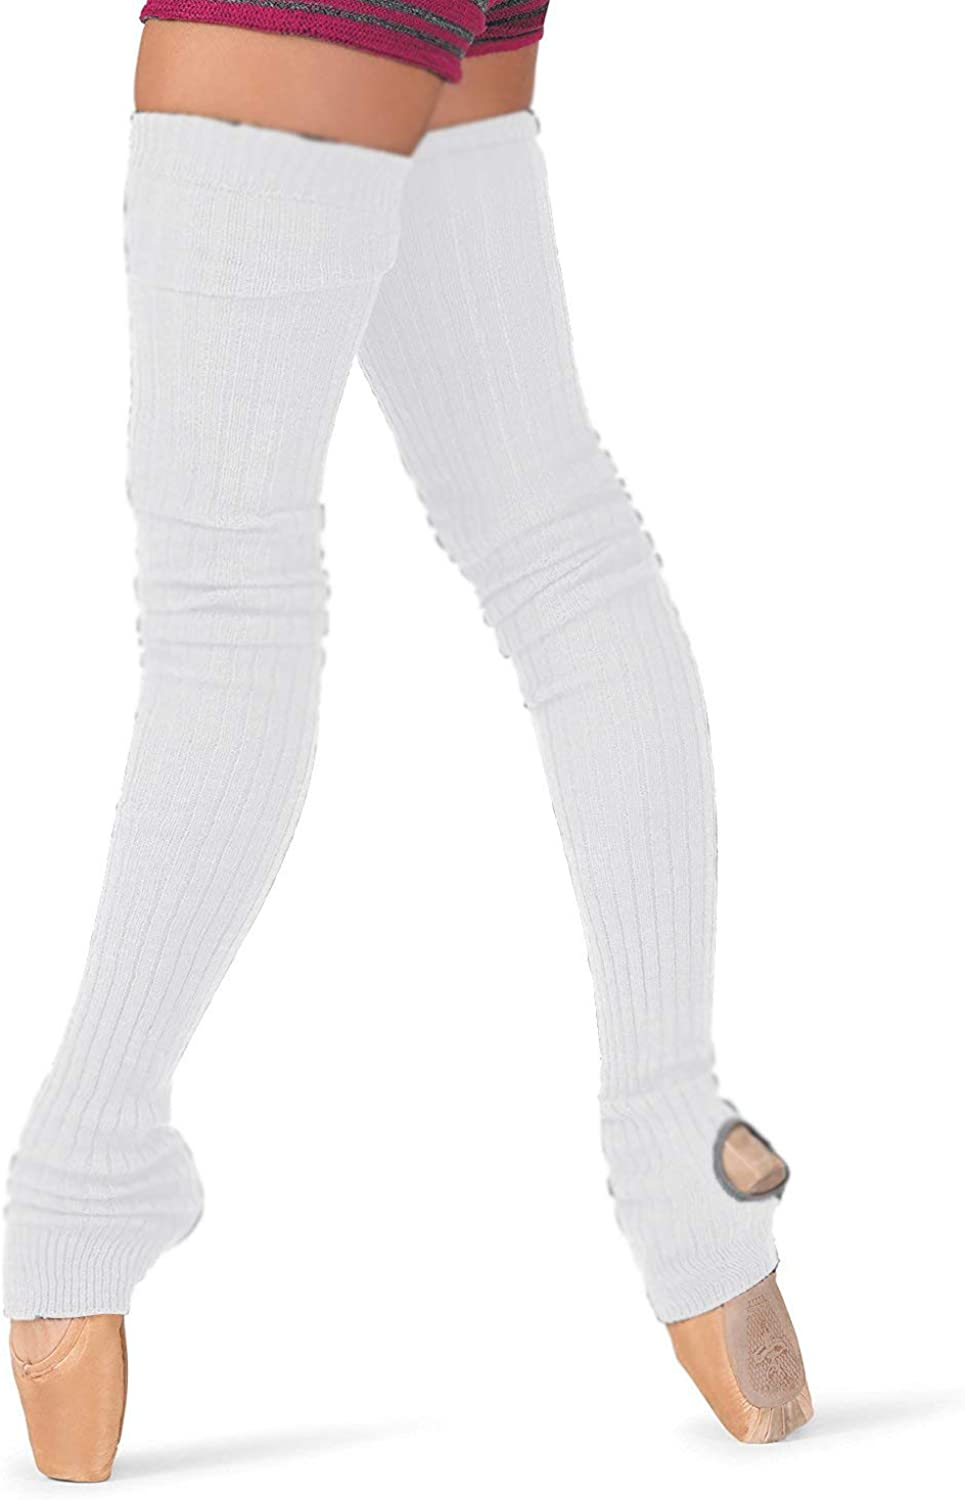 """Body Wrappers 48/"""" Extra Long Stirrup Leg Warmers 92 Black"""